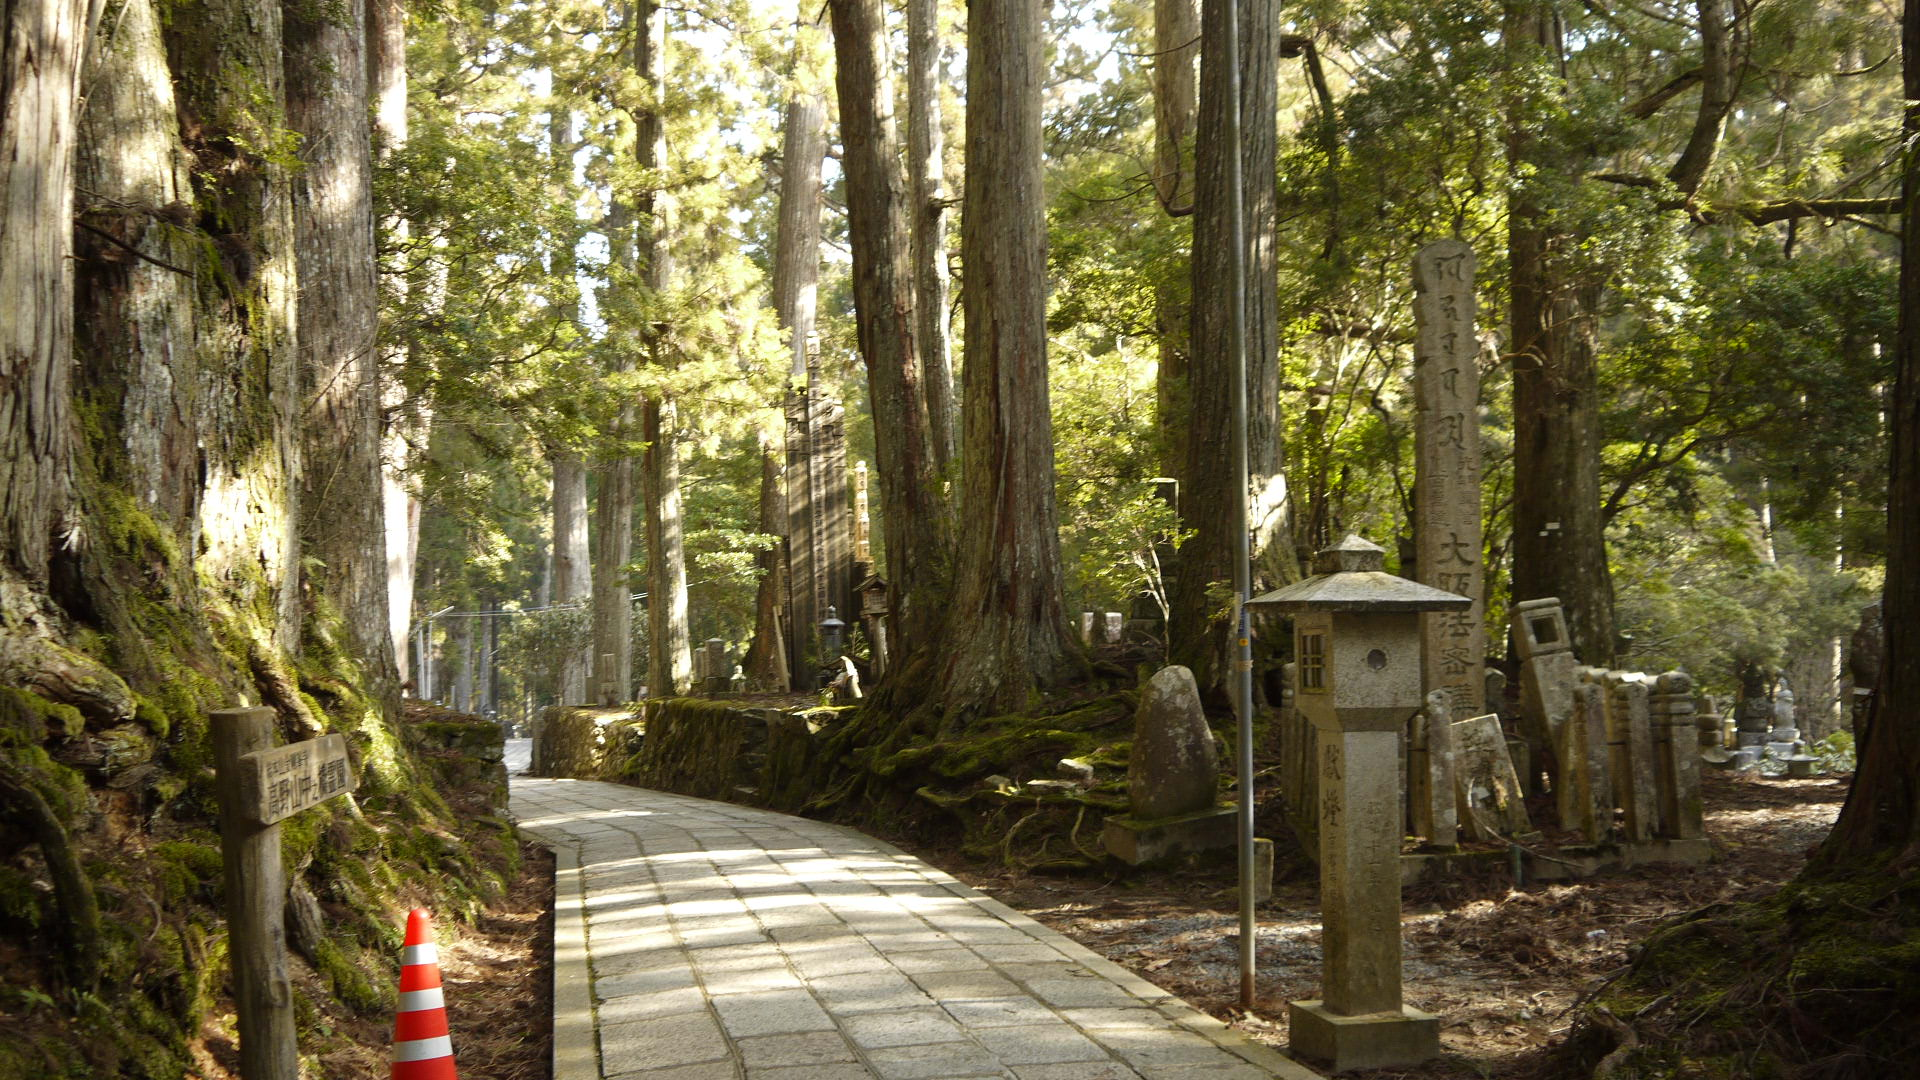 Mount koya in Japan